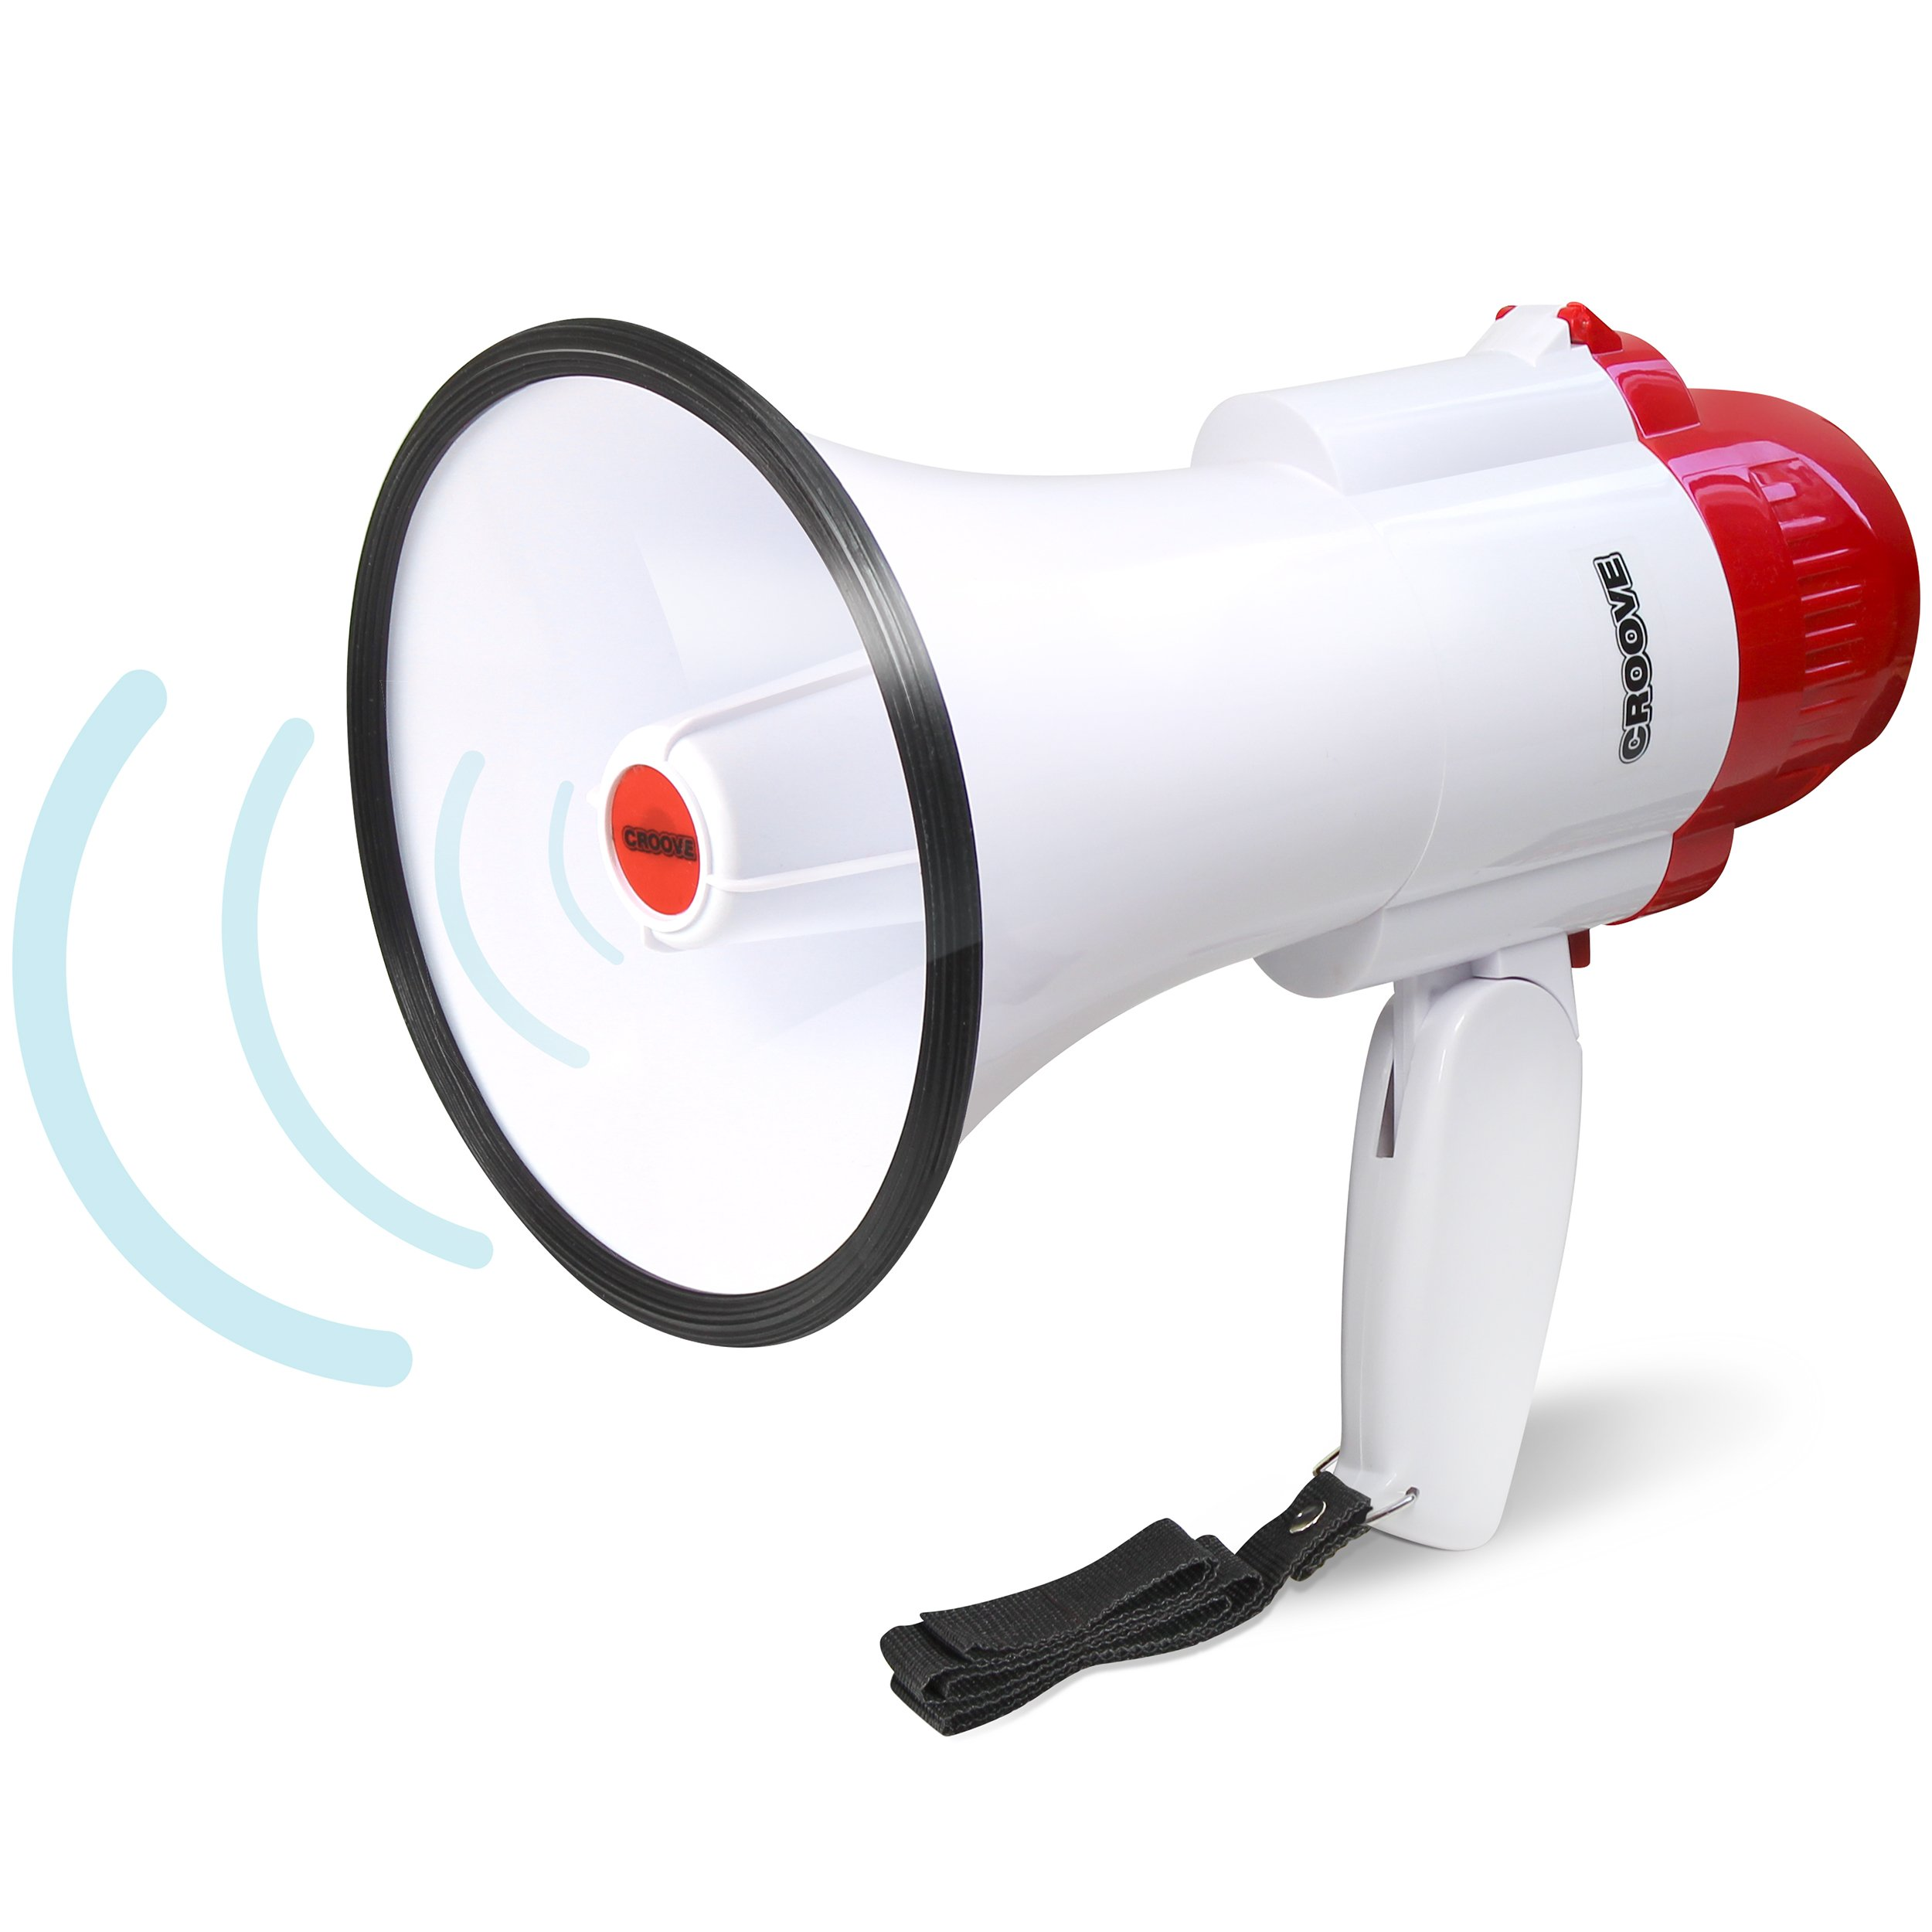 Croove Megaphone Bullhorn With Siren, 30 Watt Powerful and Lightweight